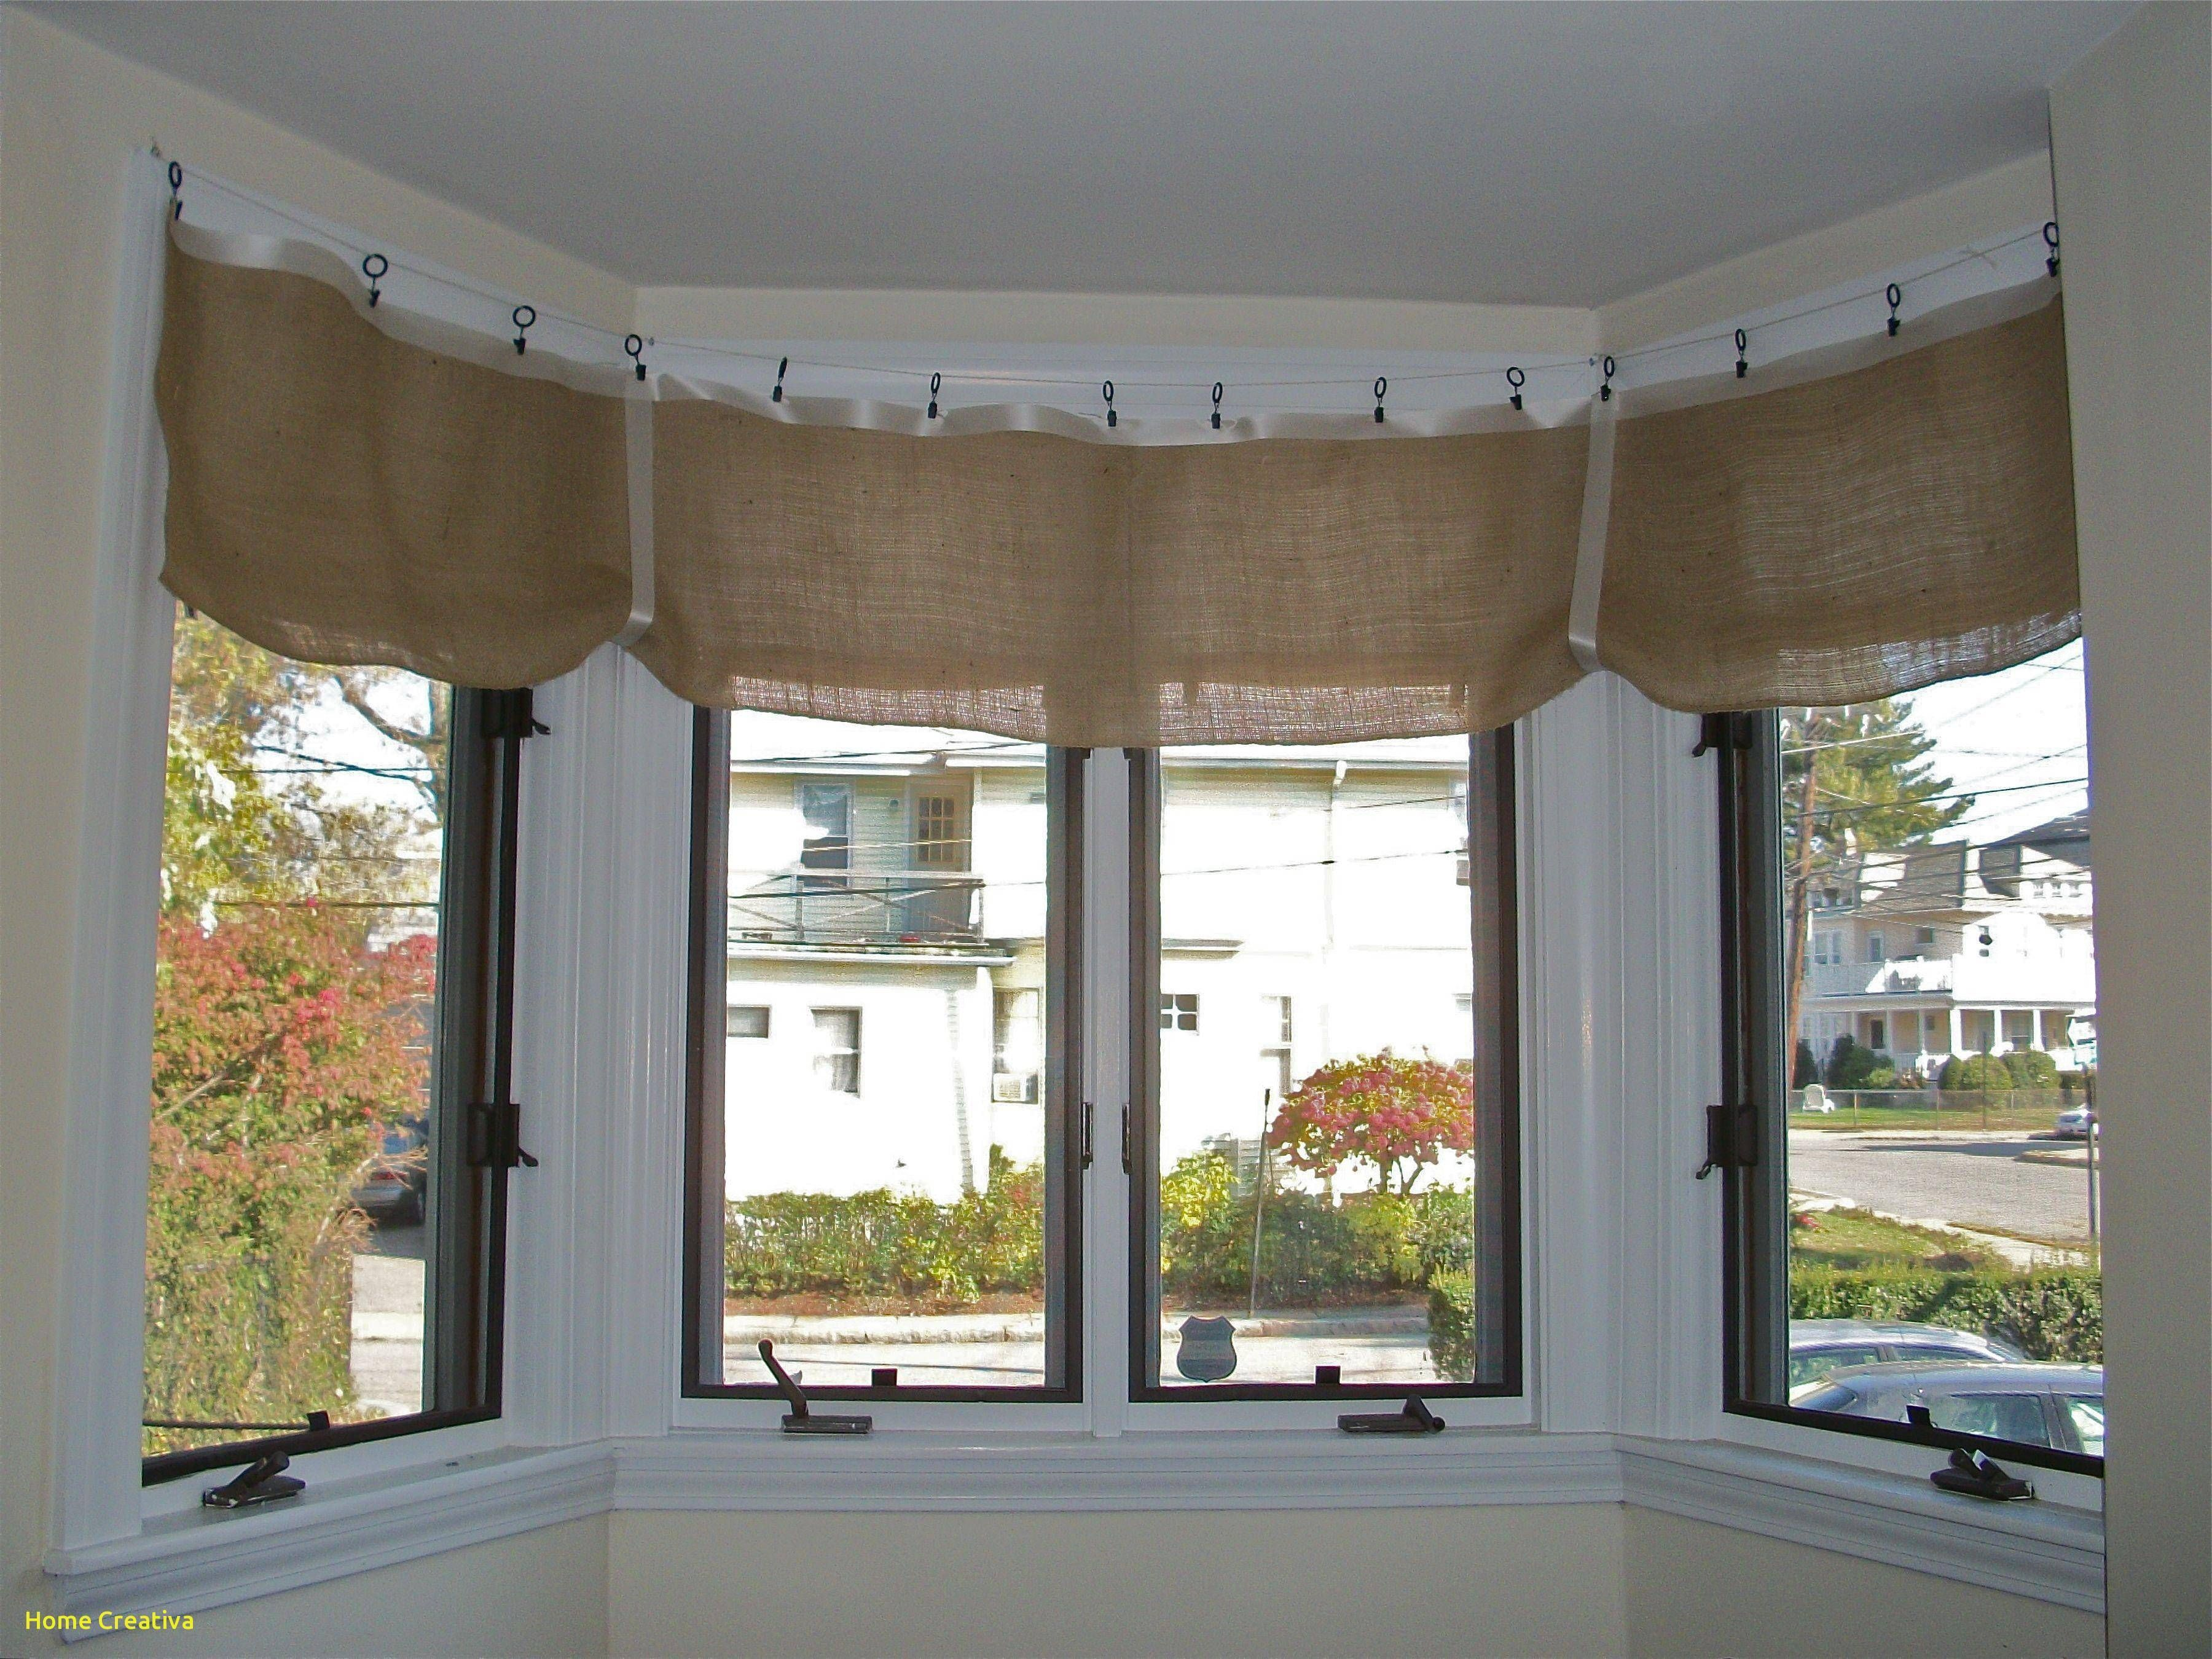 New Home Decor Window Shades Https Homecreativa Com Home Decor Window Shades Homedecoration Ho Burlap Valance Cool Curtains French Country Living Room